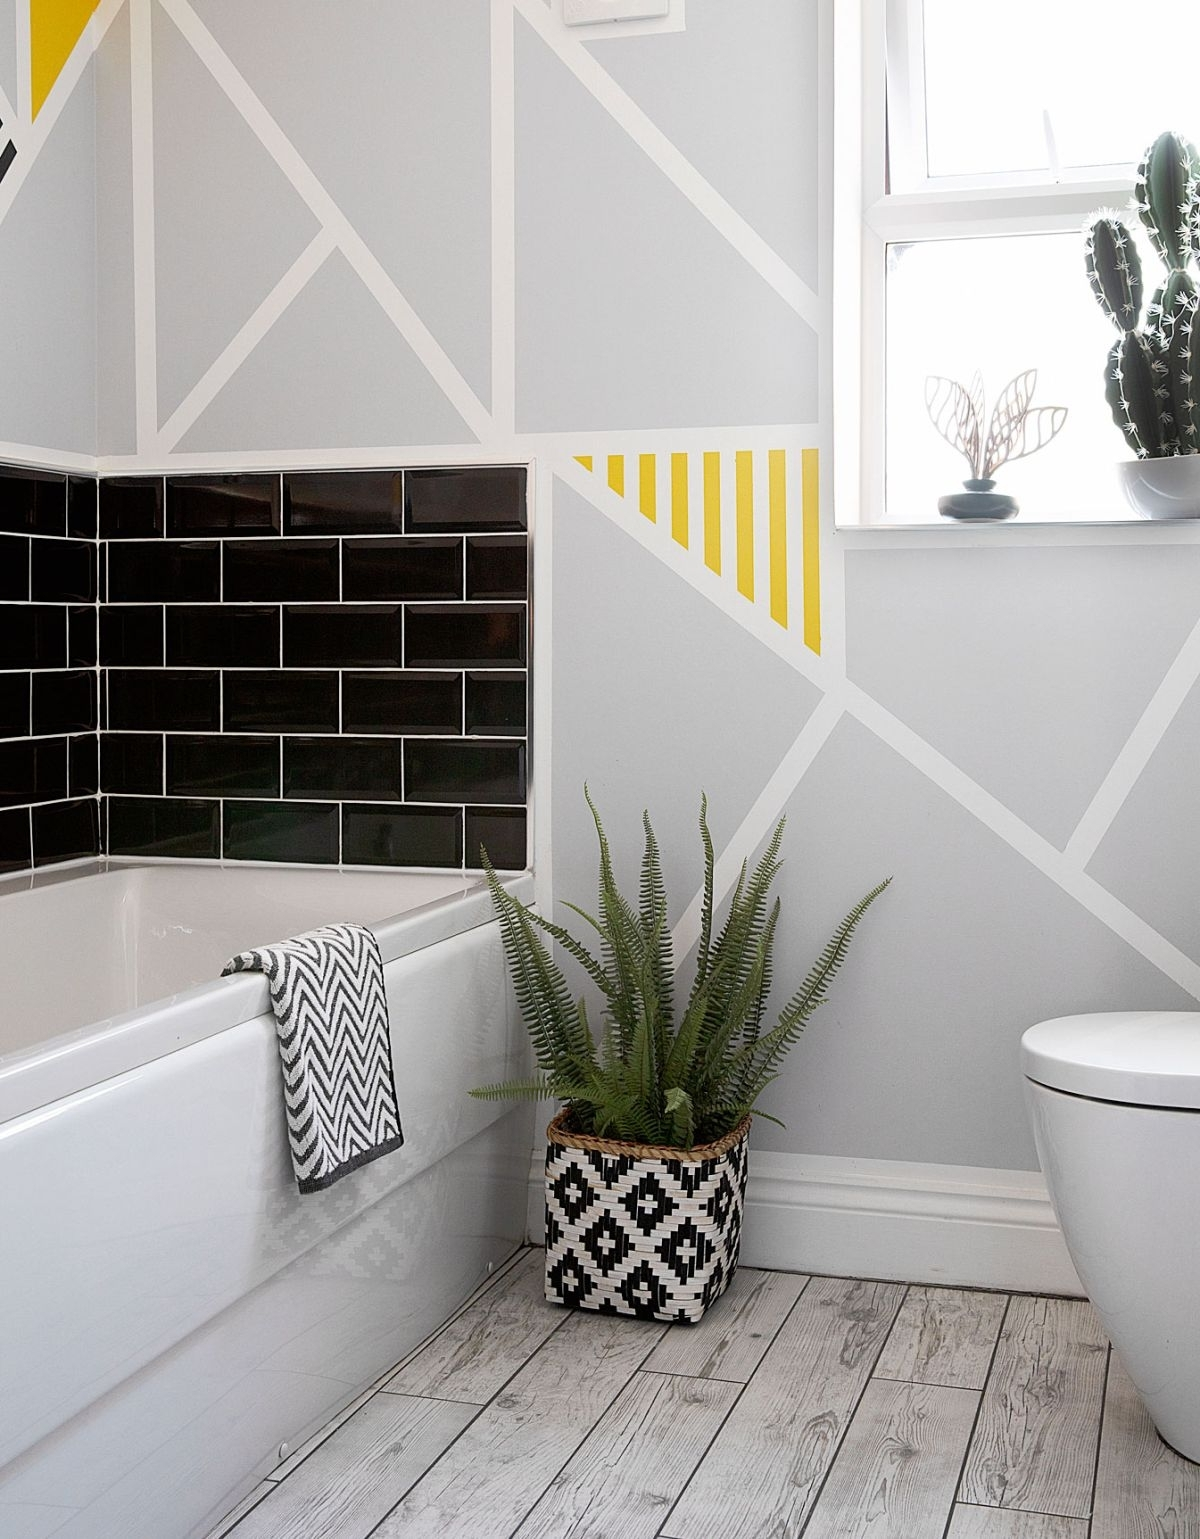 Wall Painting Ideas: 9 Ways You Can Use Paint To Brighten Up 30+ Frog Tape Bathroom Inspirations